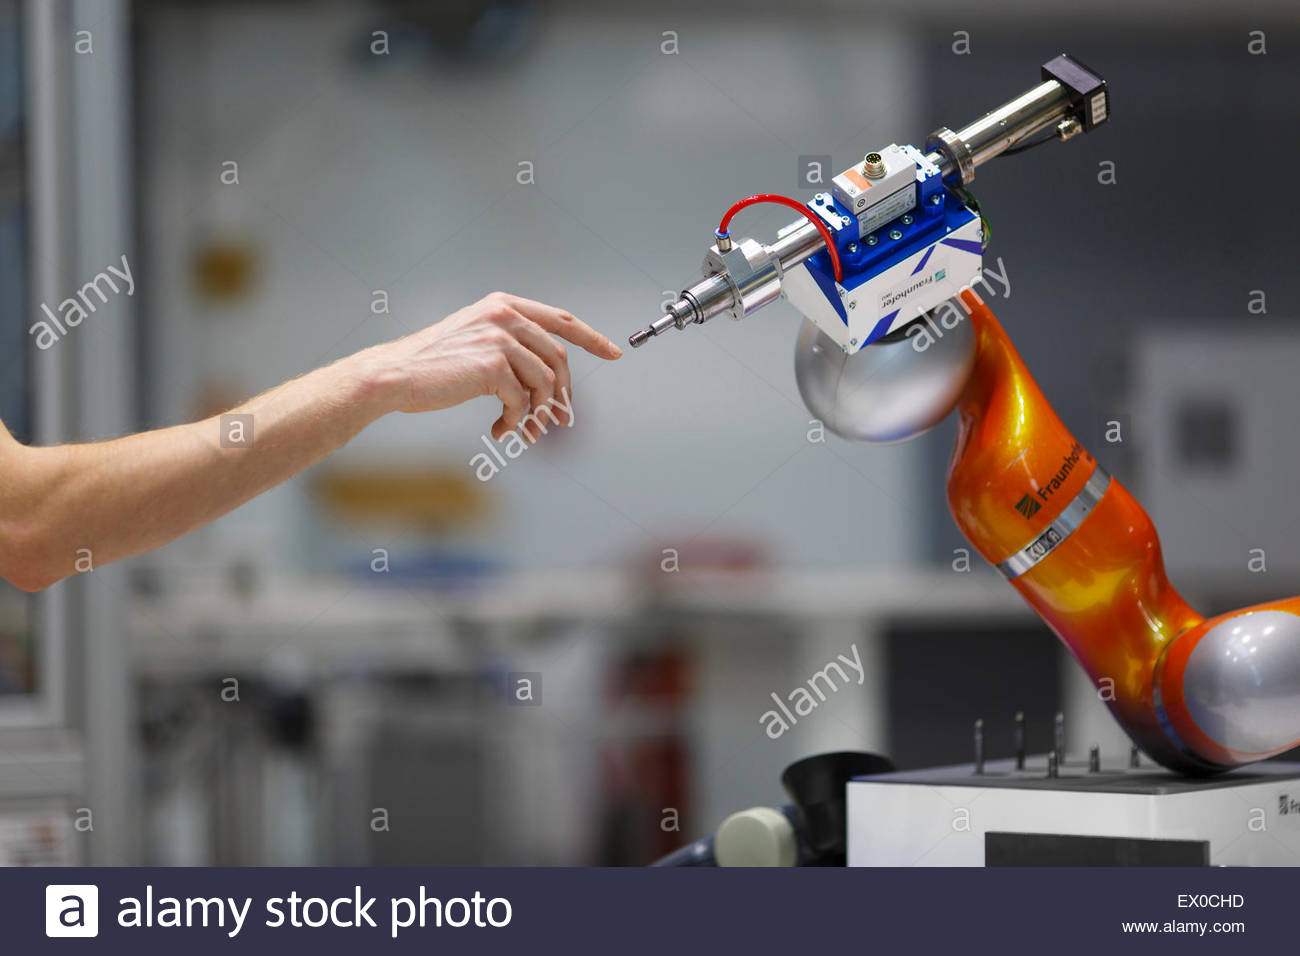 Symbolic picture on Human - Machine - cooperation - Stock Image